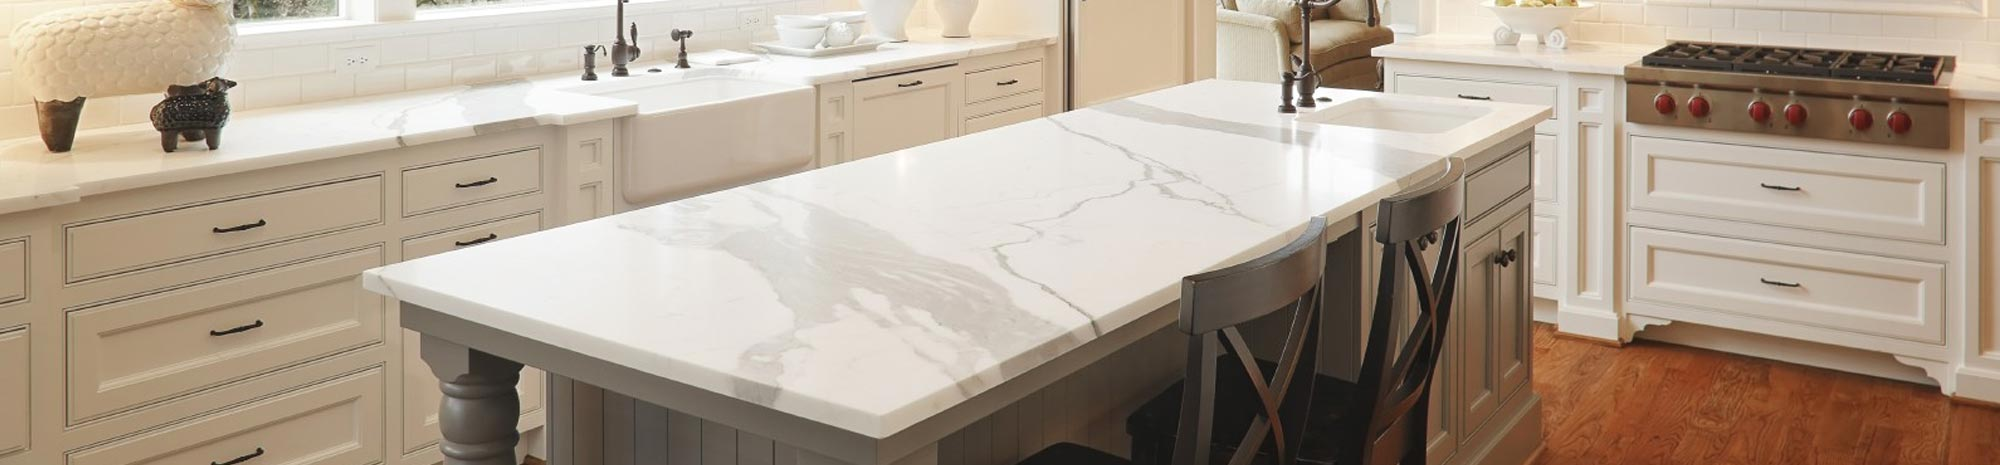 Chicago Indiana White Granite Countertops : Licensed, Bonded and Insured